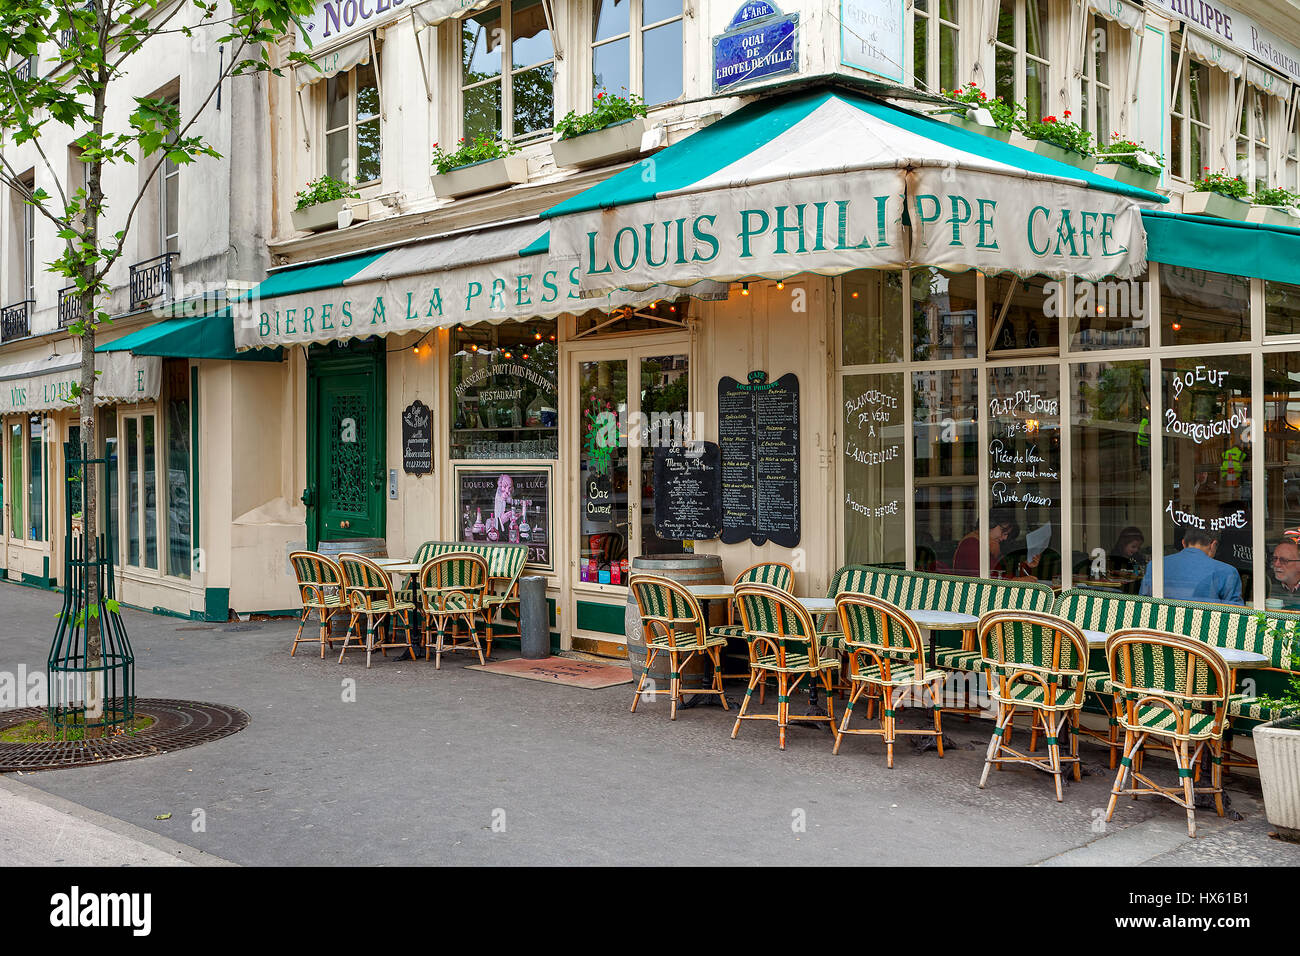 PARIS, FRANCE - MAY 24, 2016: Sidewalk and cafe Louis Philippe - famous parisian bistro since 1851, situated alongside - Stock Image